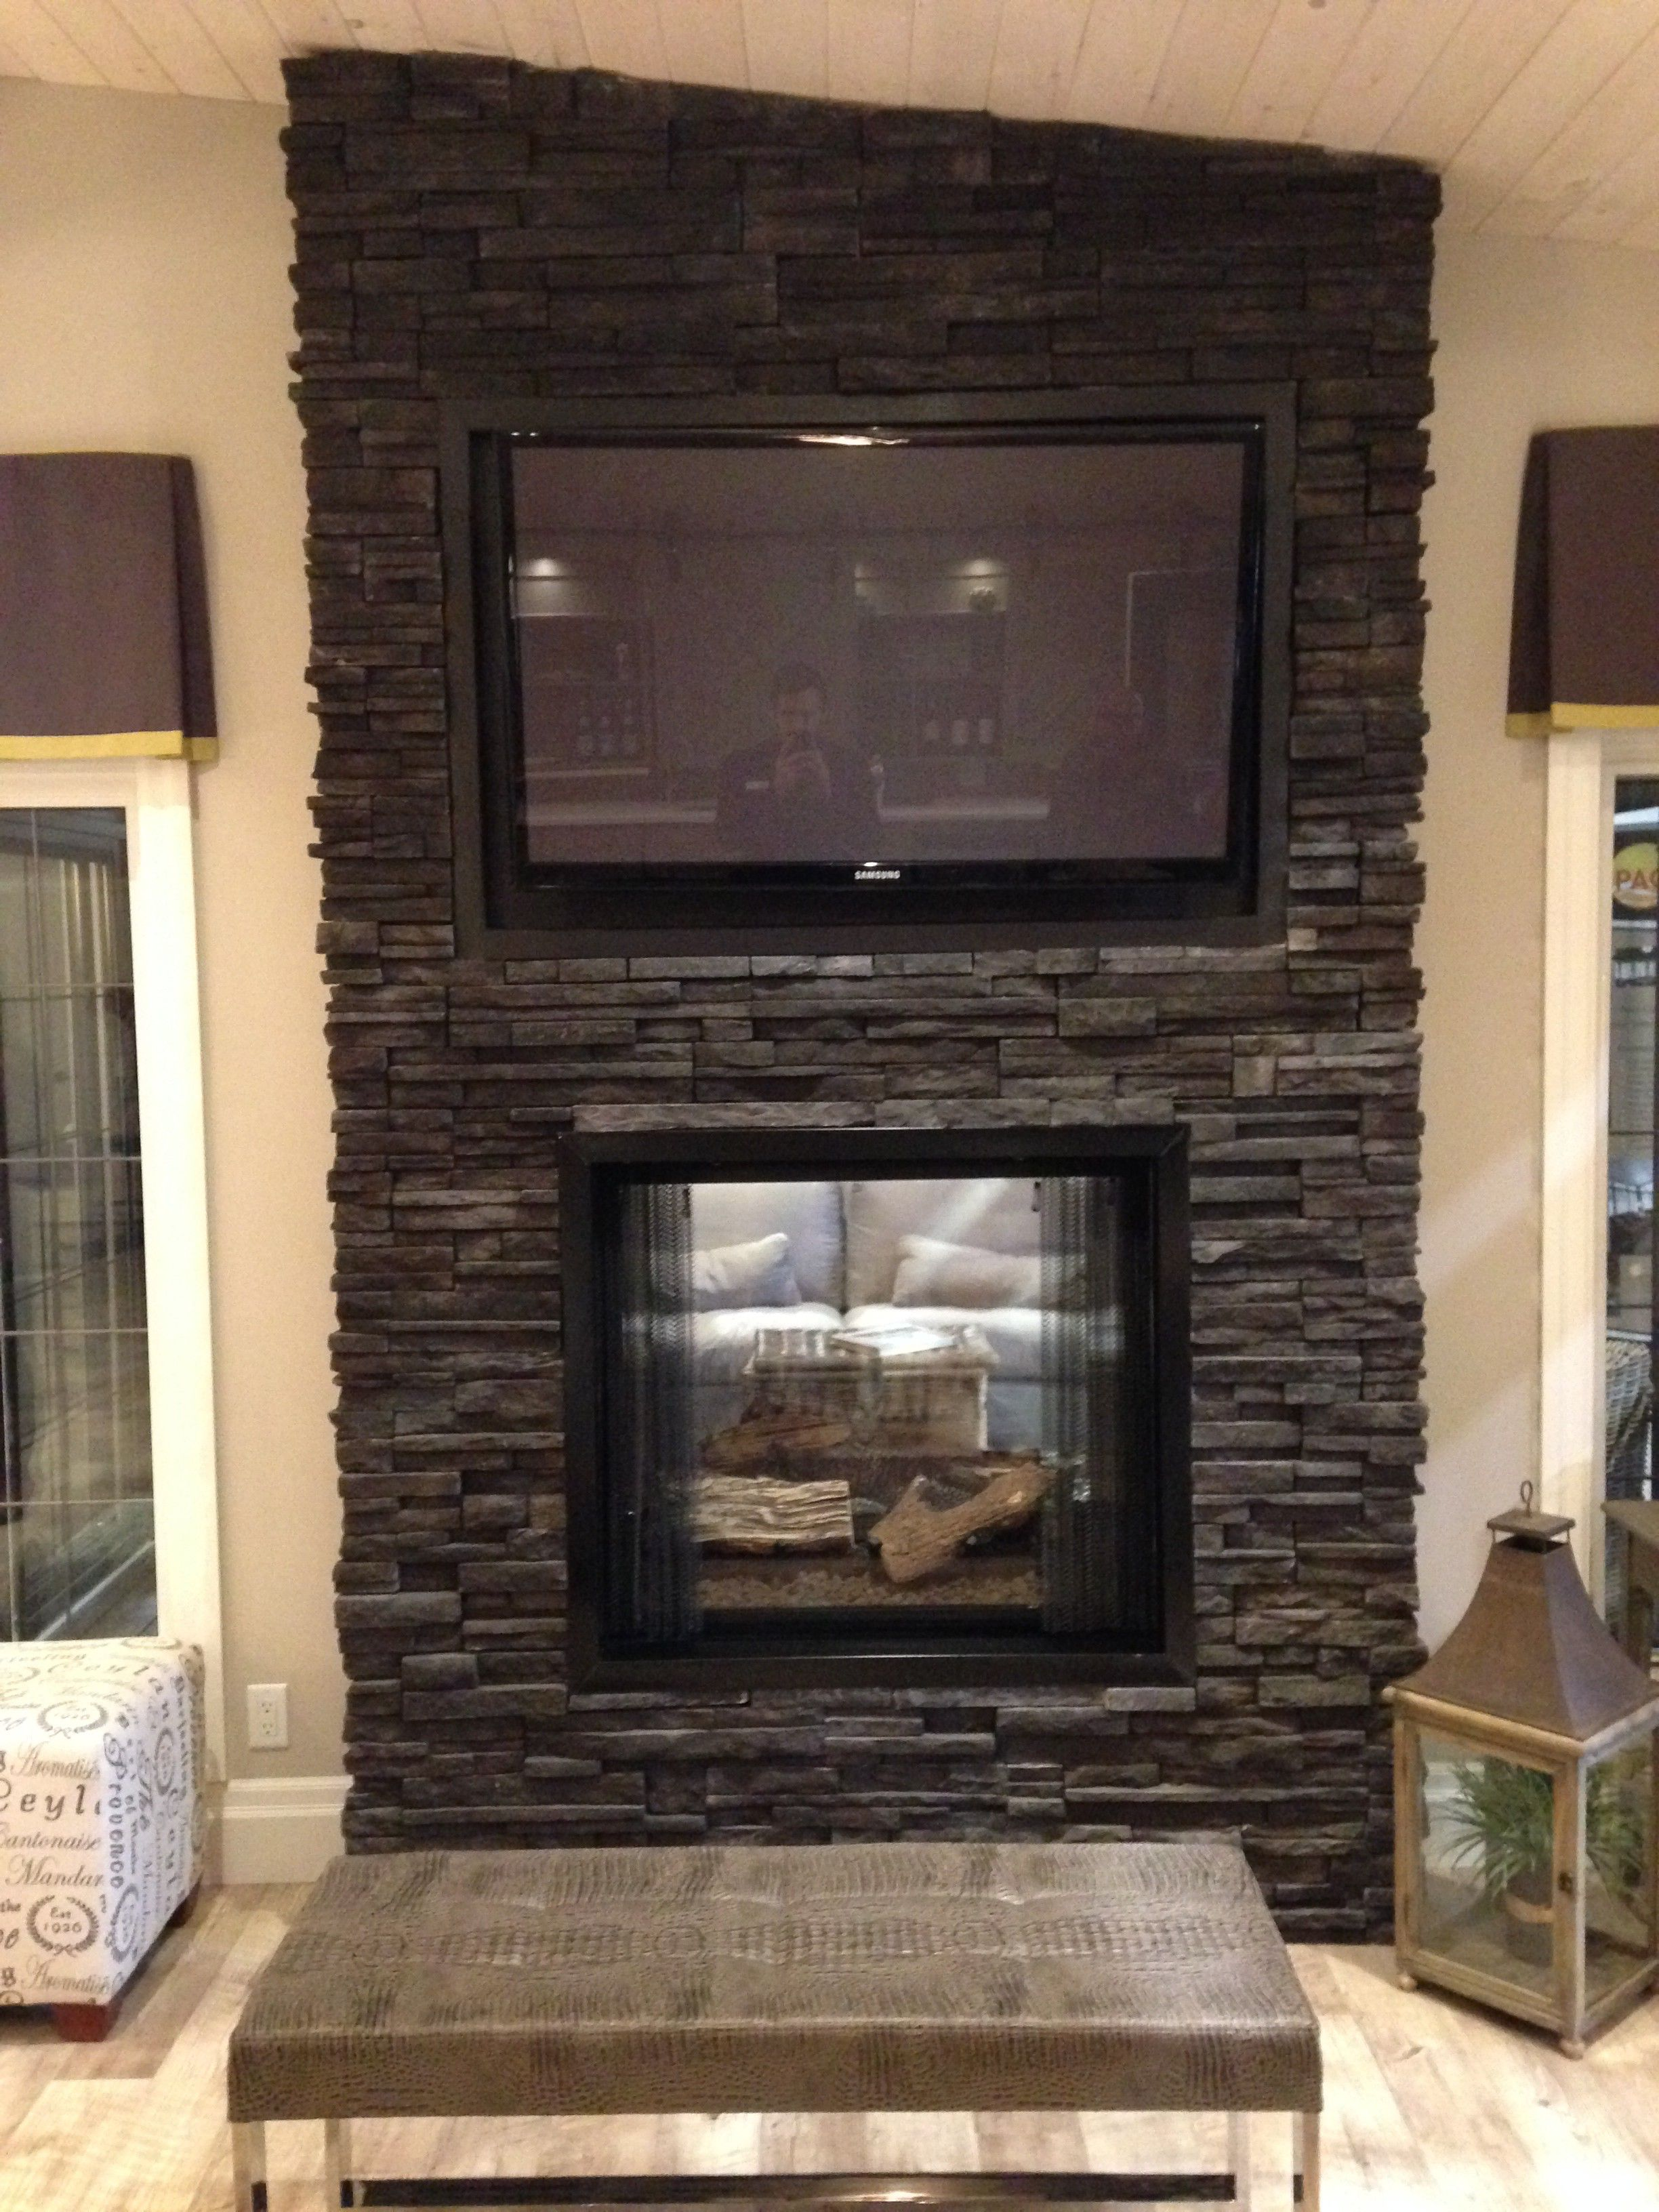 apsley linear firesfriendly enviro fires face series gas products contemporary fireplaces c propane clean friendly fireplace